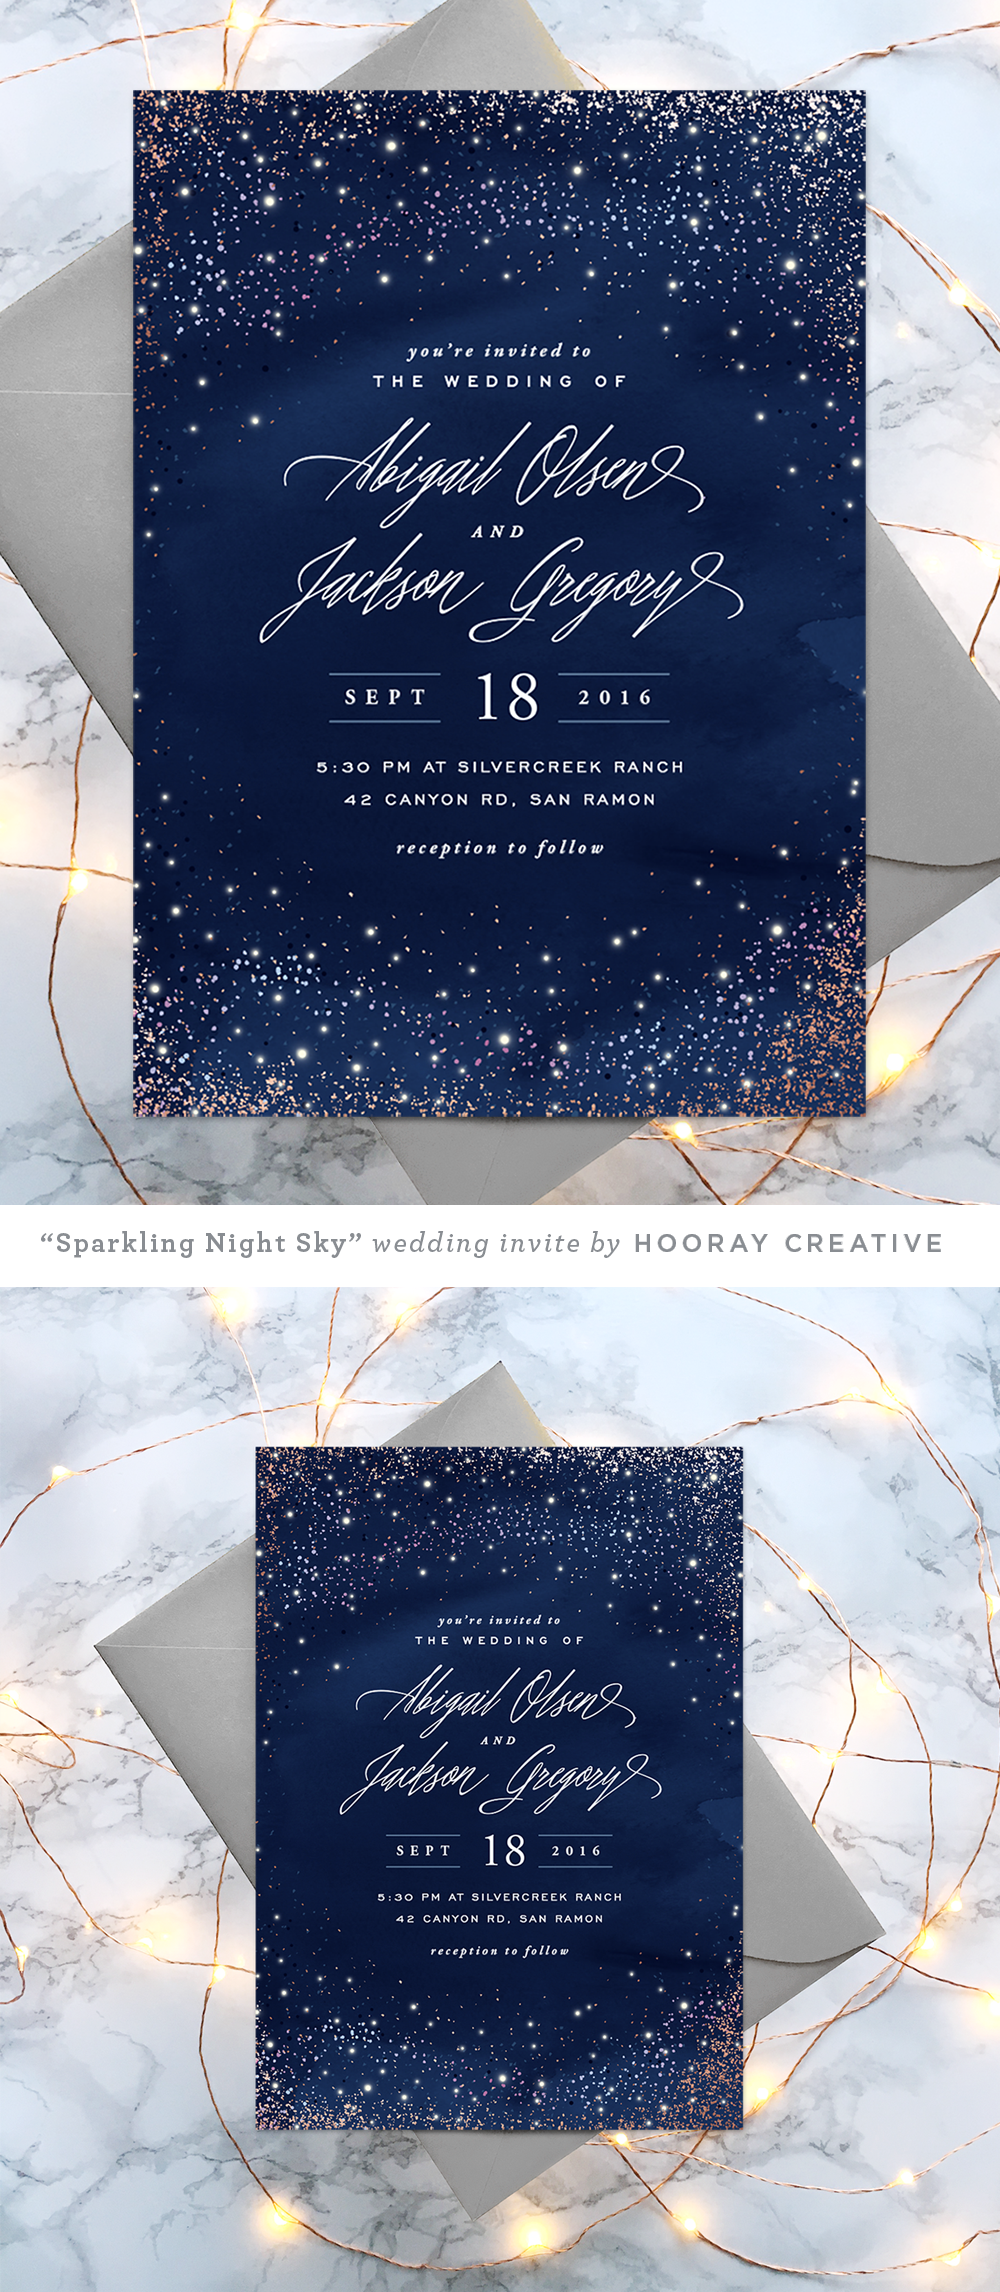 Sparkling Night Sky Starry Wedding Invitation Design And Styling By Hooray Creative Starry Wedding Wedding Invitation Design Wedding Invitations